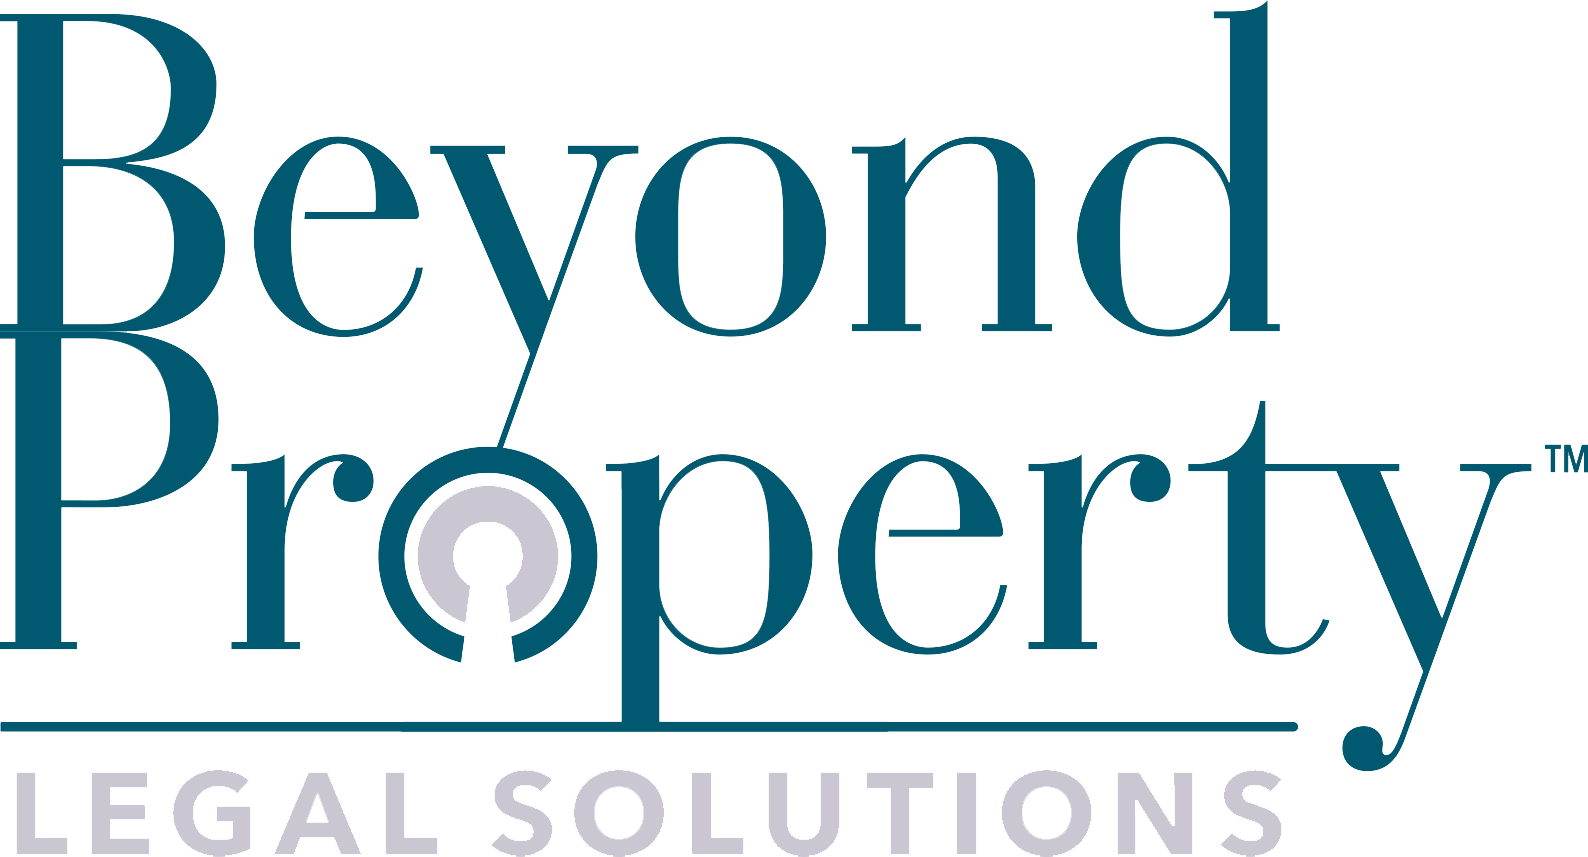 Beyond Property Legal Solutions